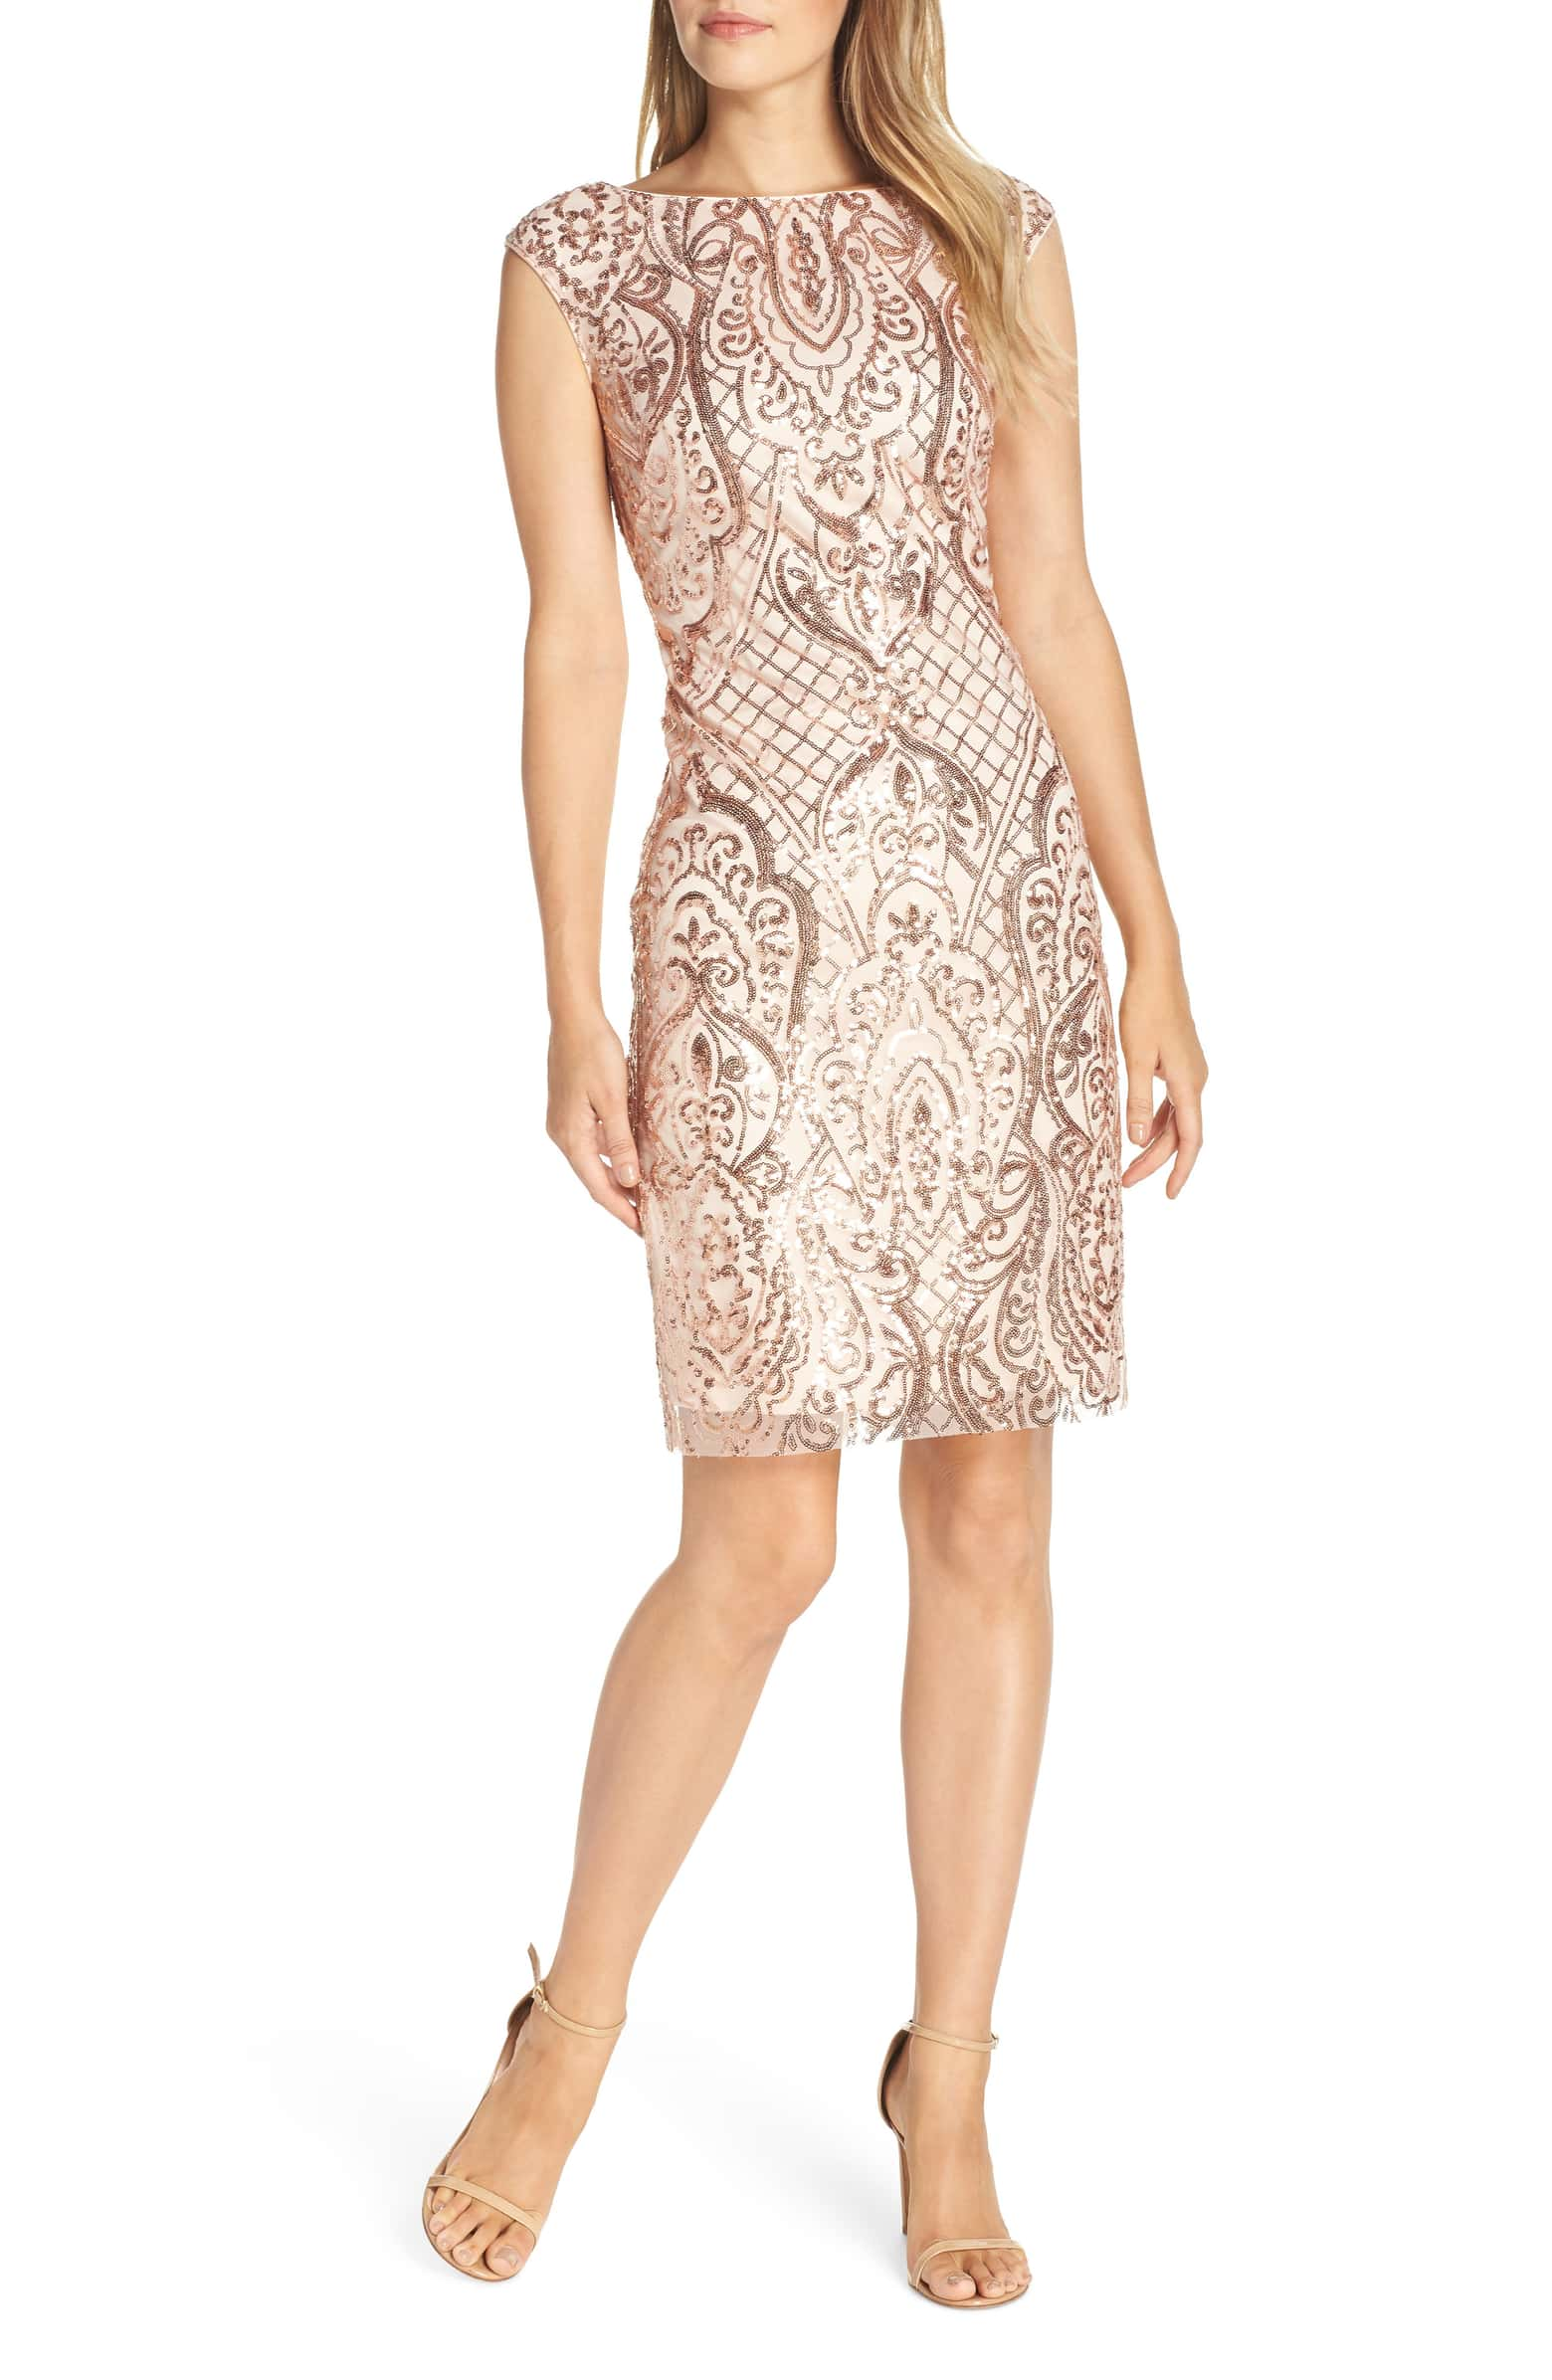 vince camuto sequin dress.jpg